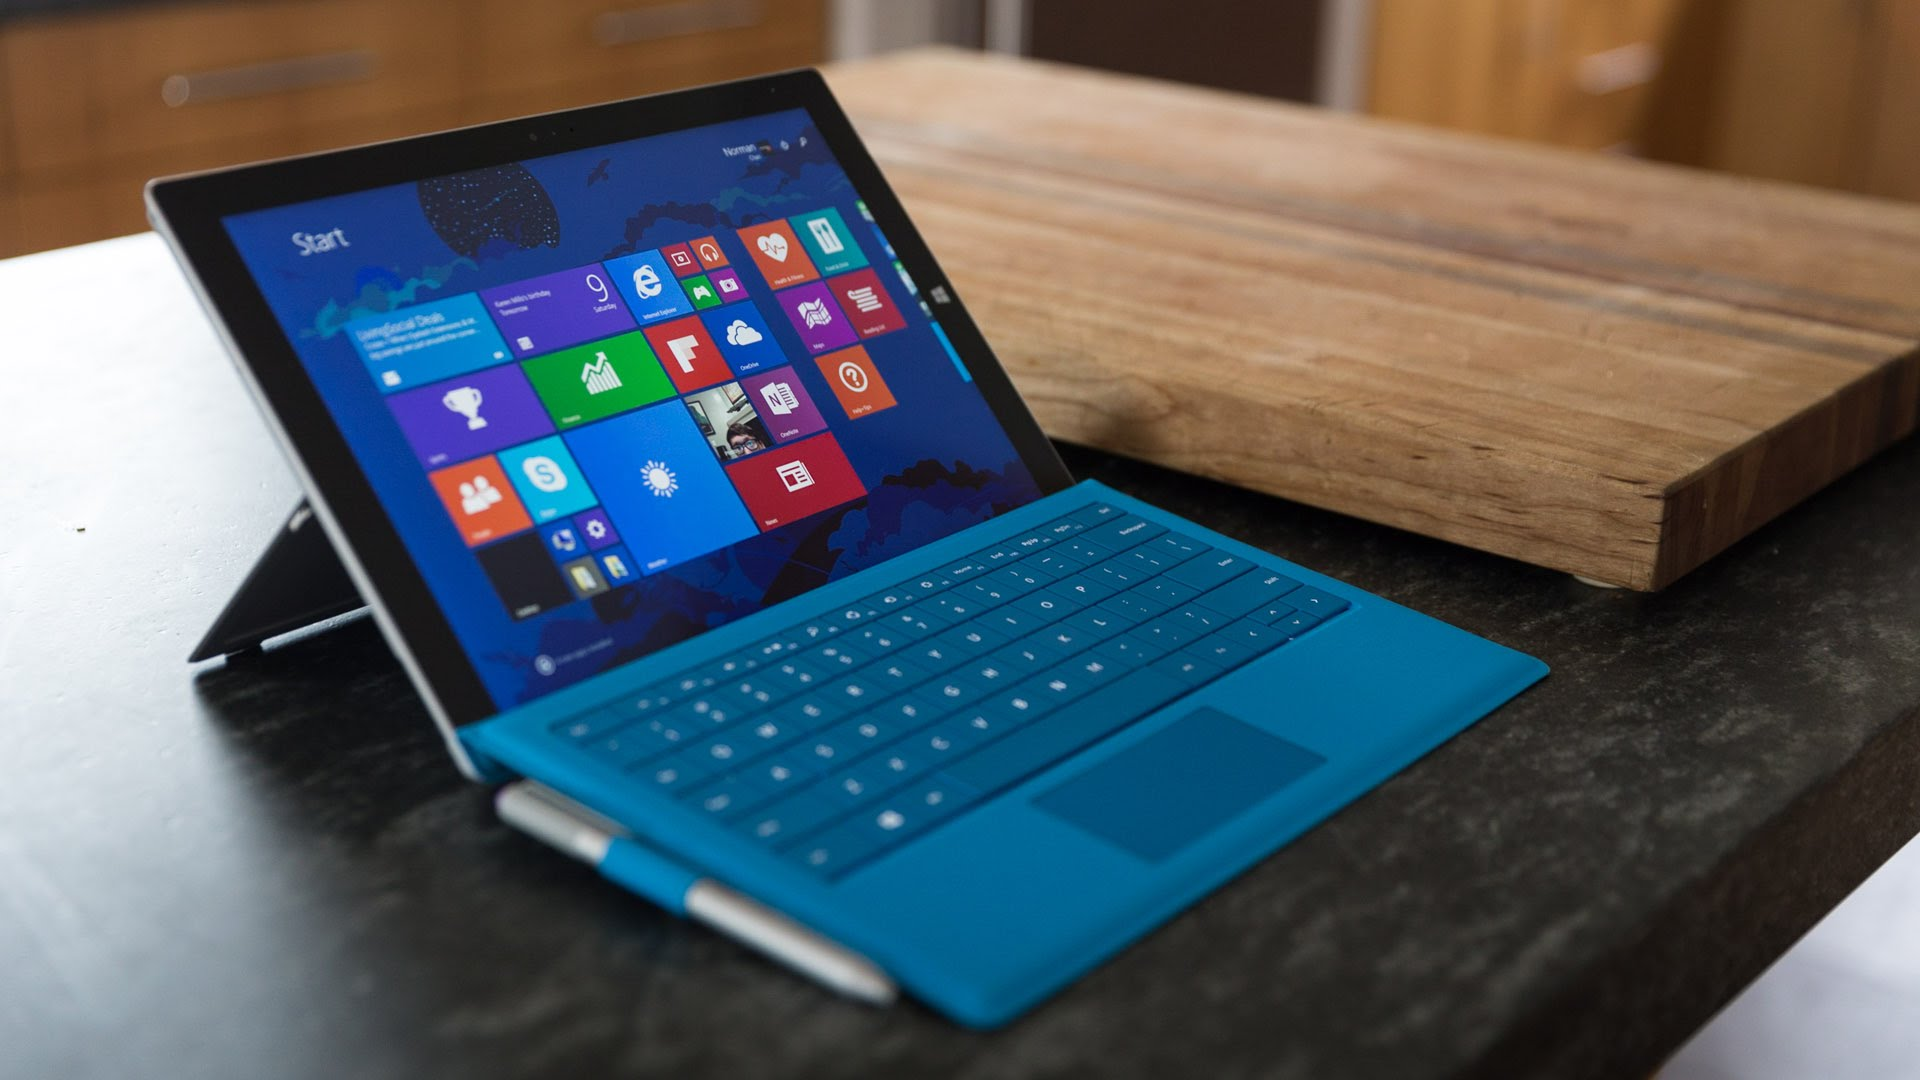 Tested In-Depth: Microsoft Surface Pro 3